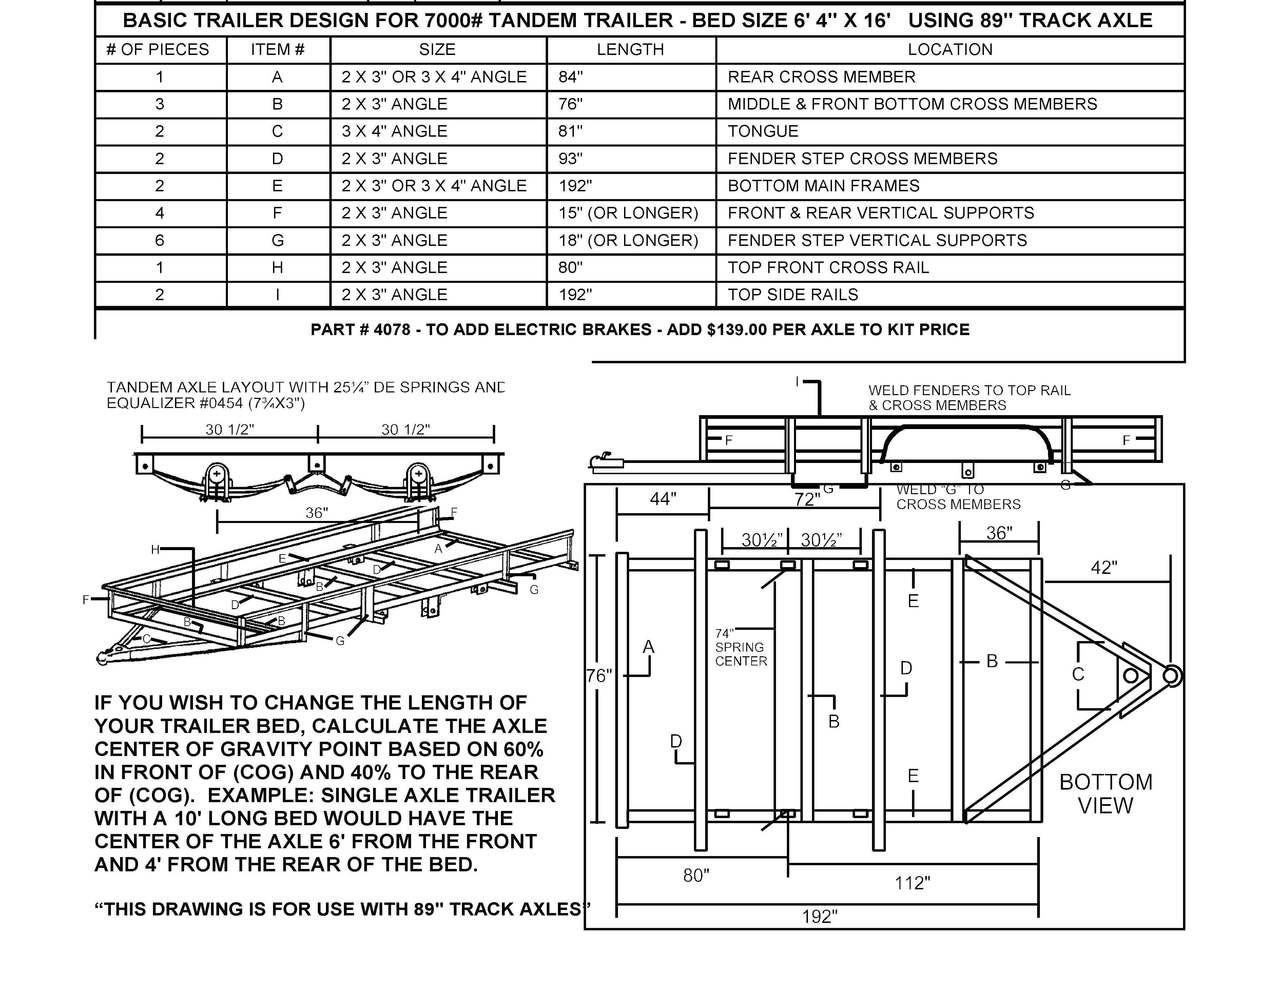 small resolution of build your own utility trailer with champion trailers tandem sincgars radio configurations diagrams 95 champion wiring diagram